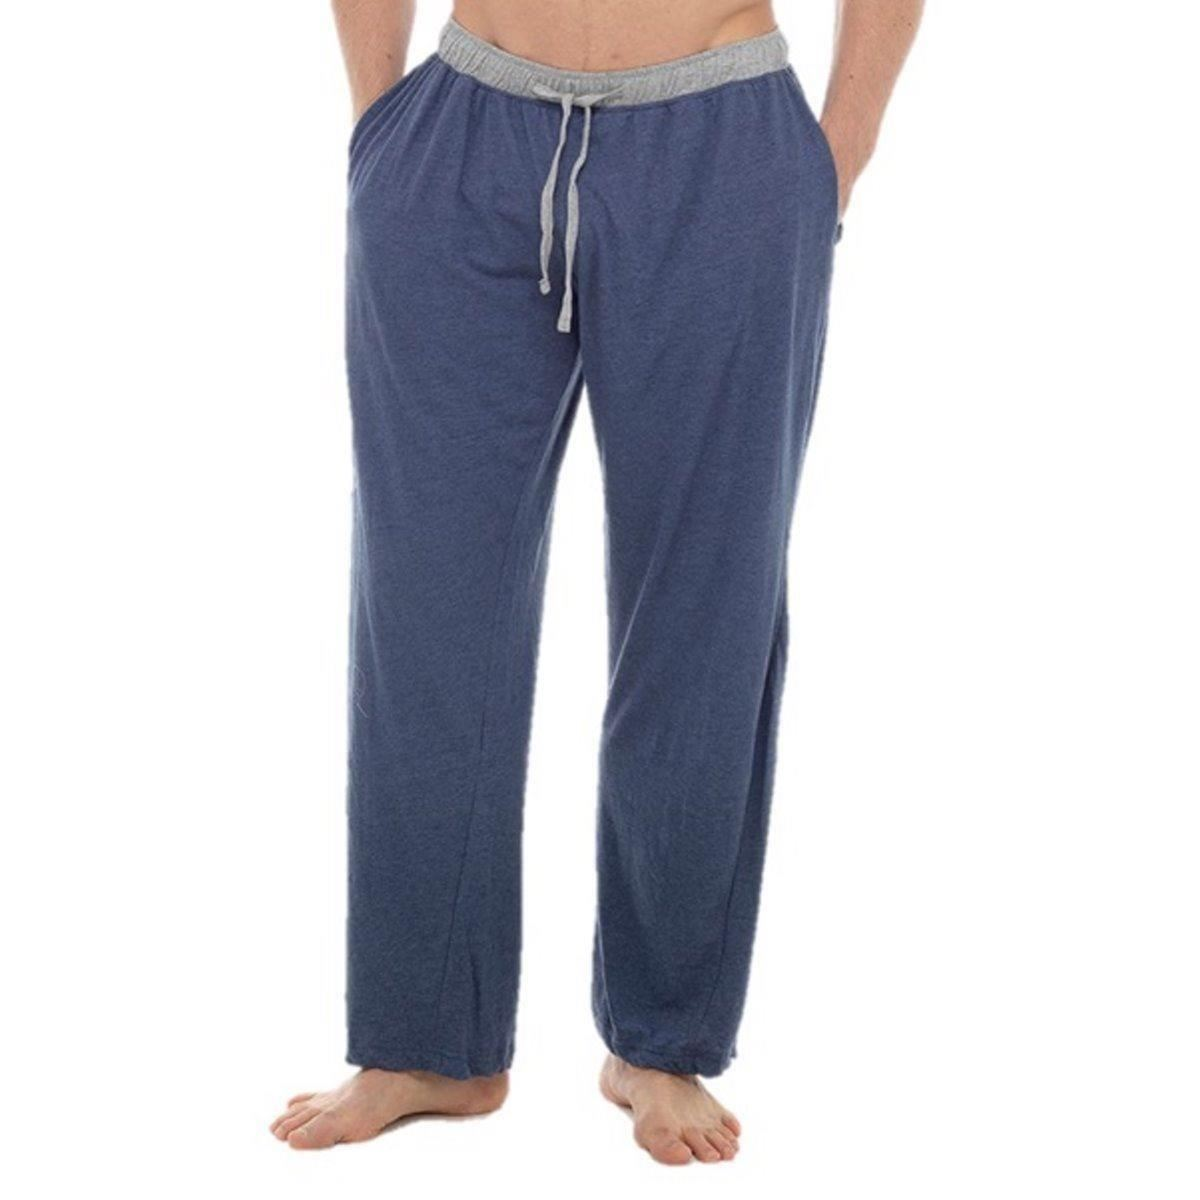 Relax & Unwind in Our Preppy Women's Lounge Pants, Sleep Sets, Pajama Shorts & More. Enjoy Free Shipping & Returns on Every Order!